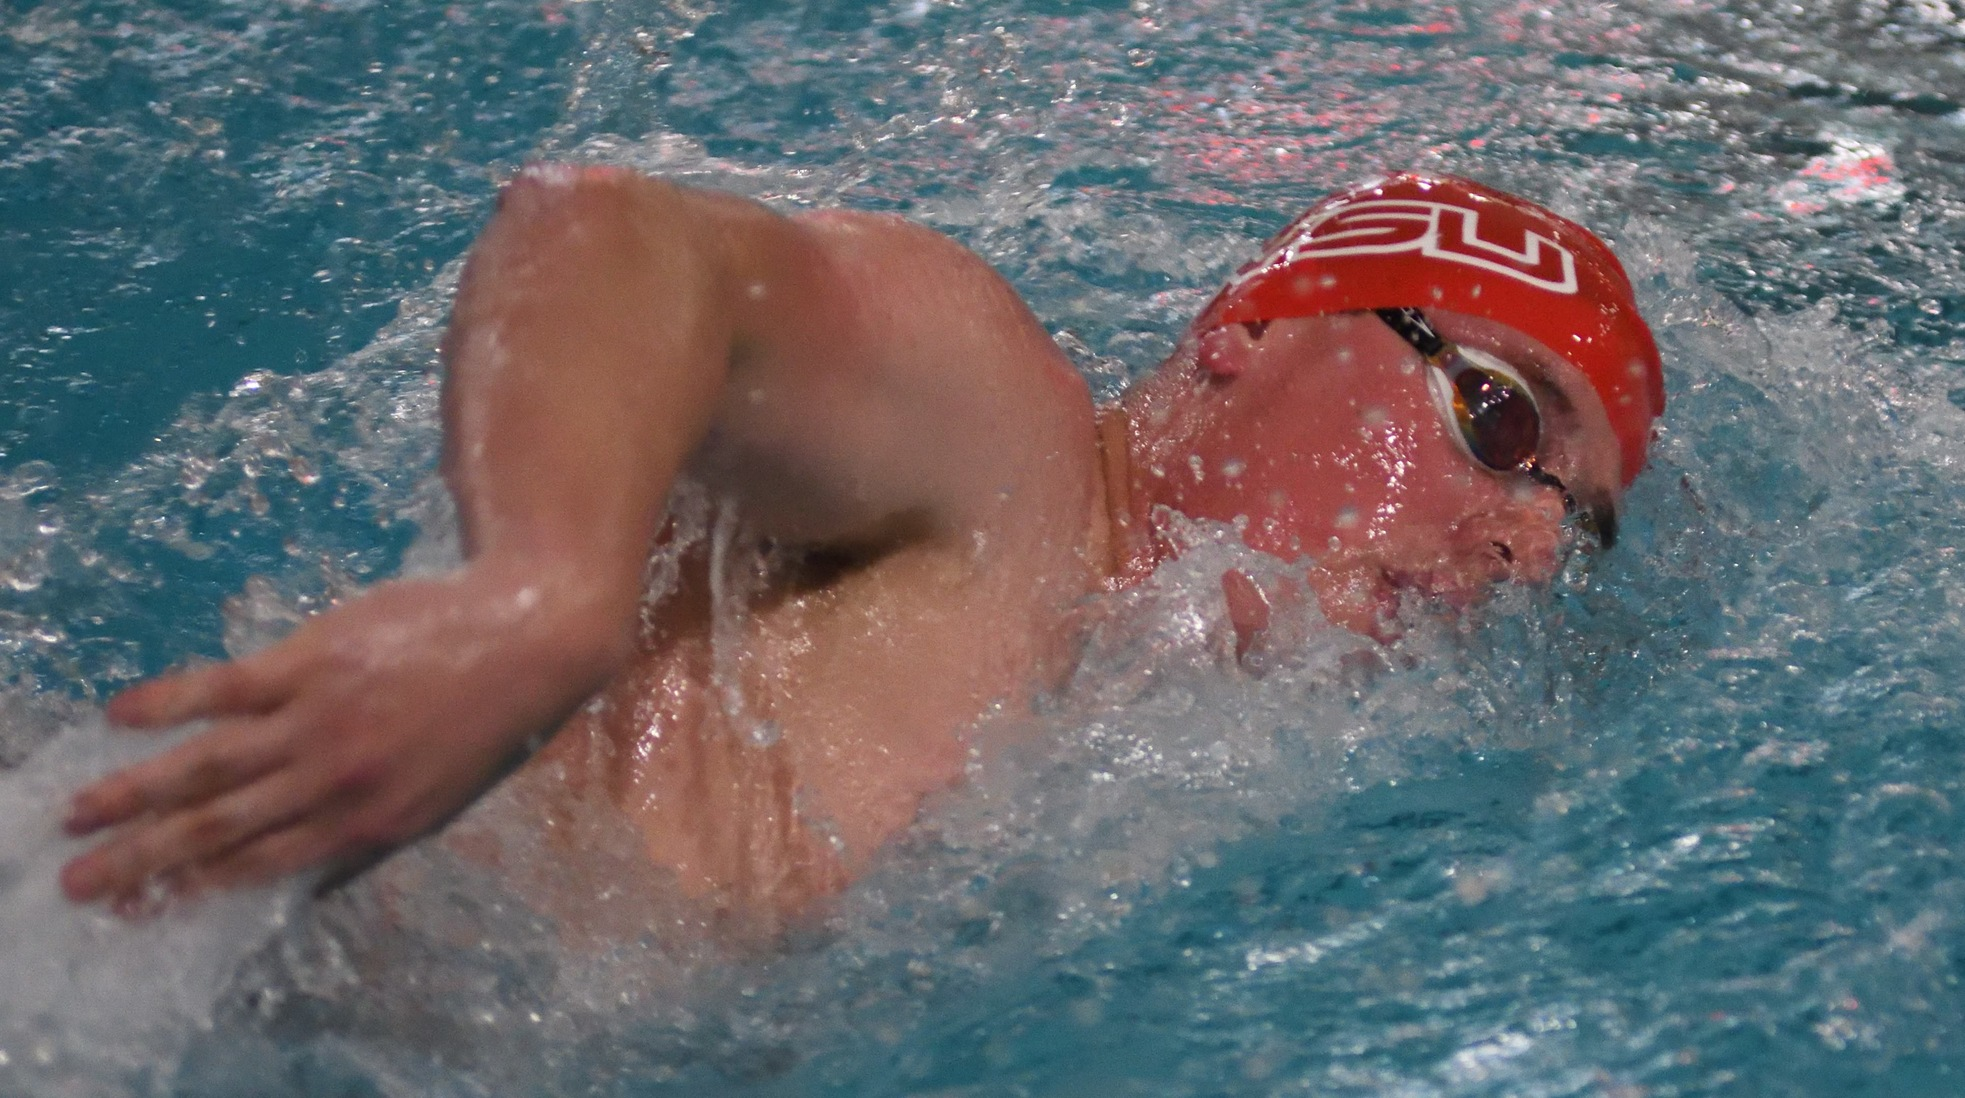 Swimming & Diving teams compete on day two at Wabash Invitational